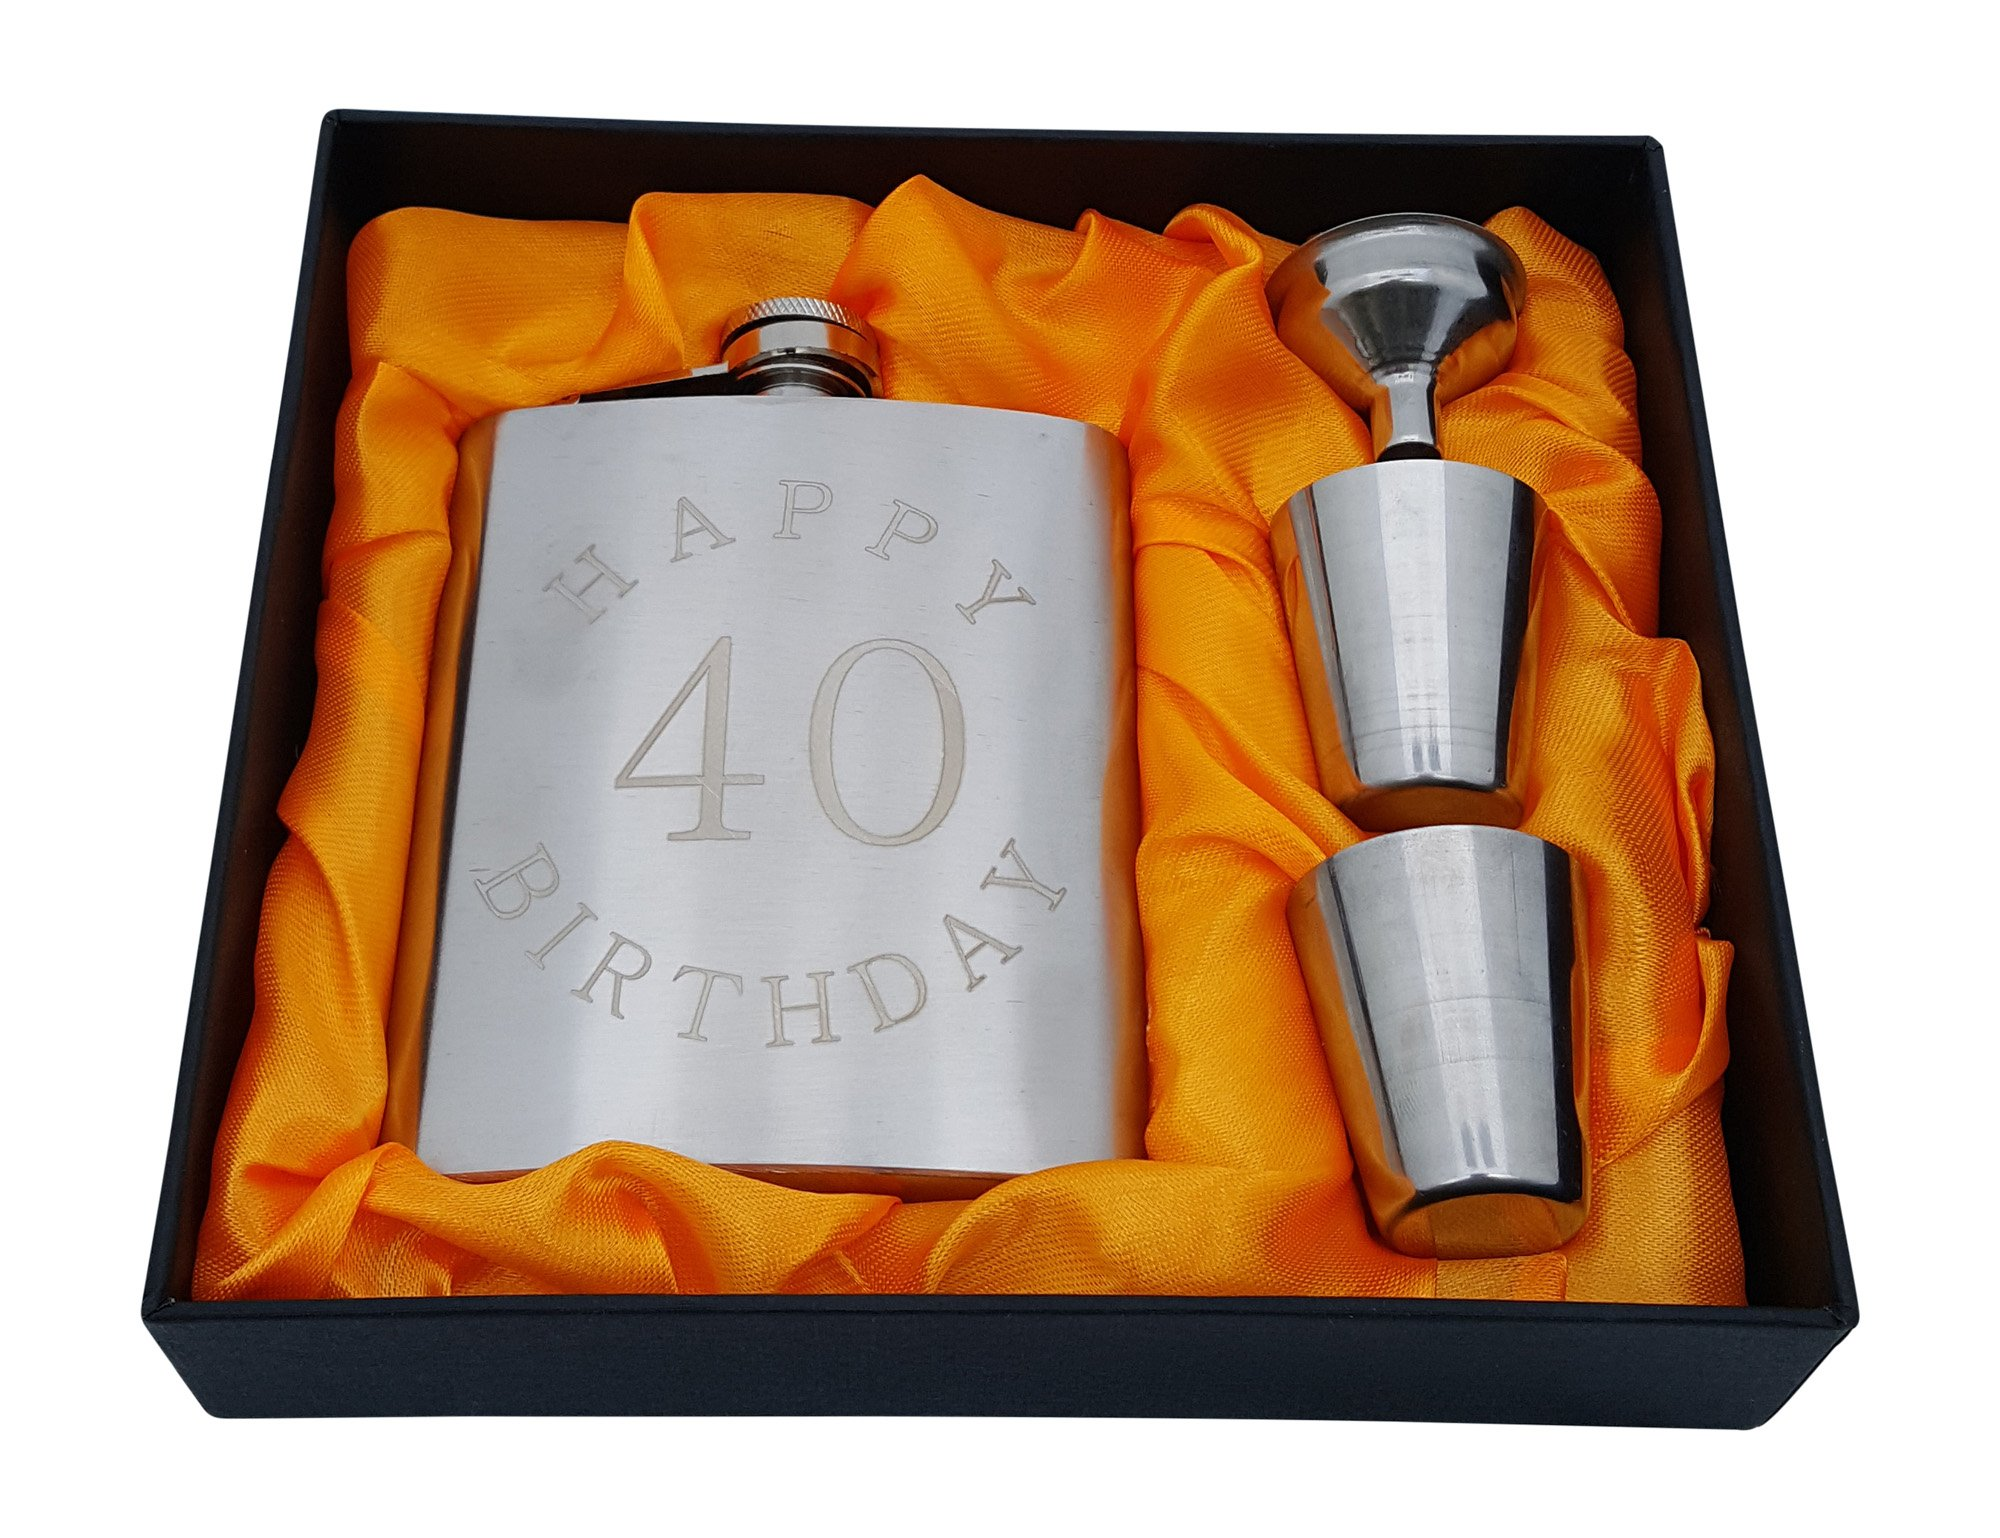 40th Birthday Flask Gift Set - 7 oz Flask Engraved with''Happy 40 Birthday''